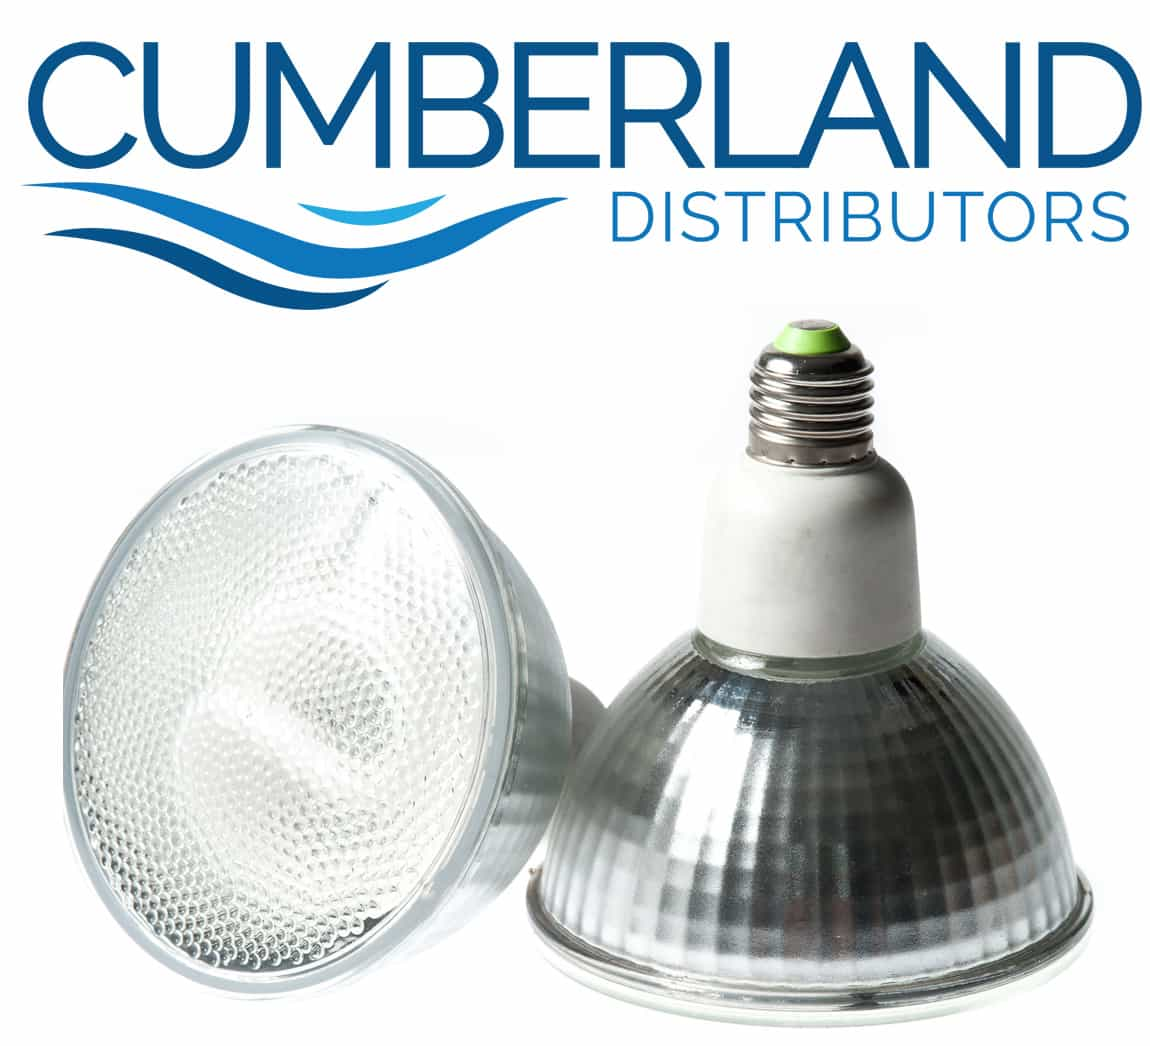 Cumberland Distributors - Nashville Web Design